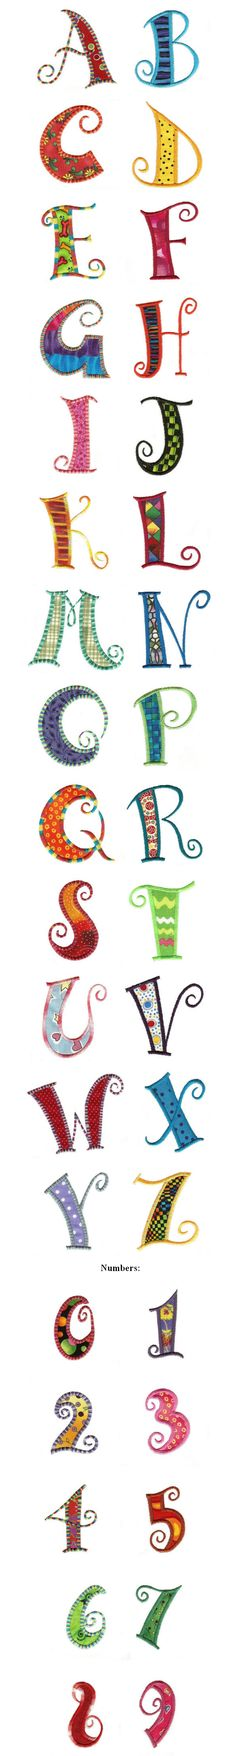 Curly Q Applique - letters and numbers